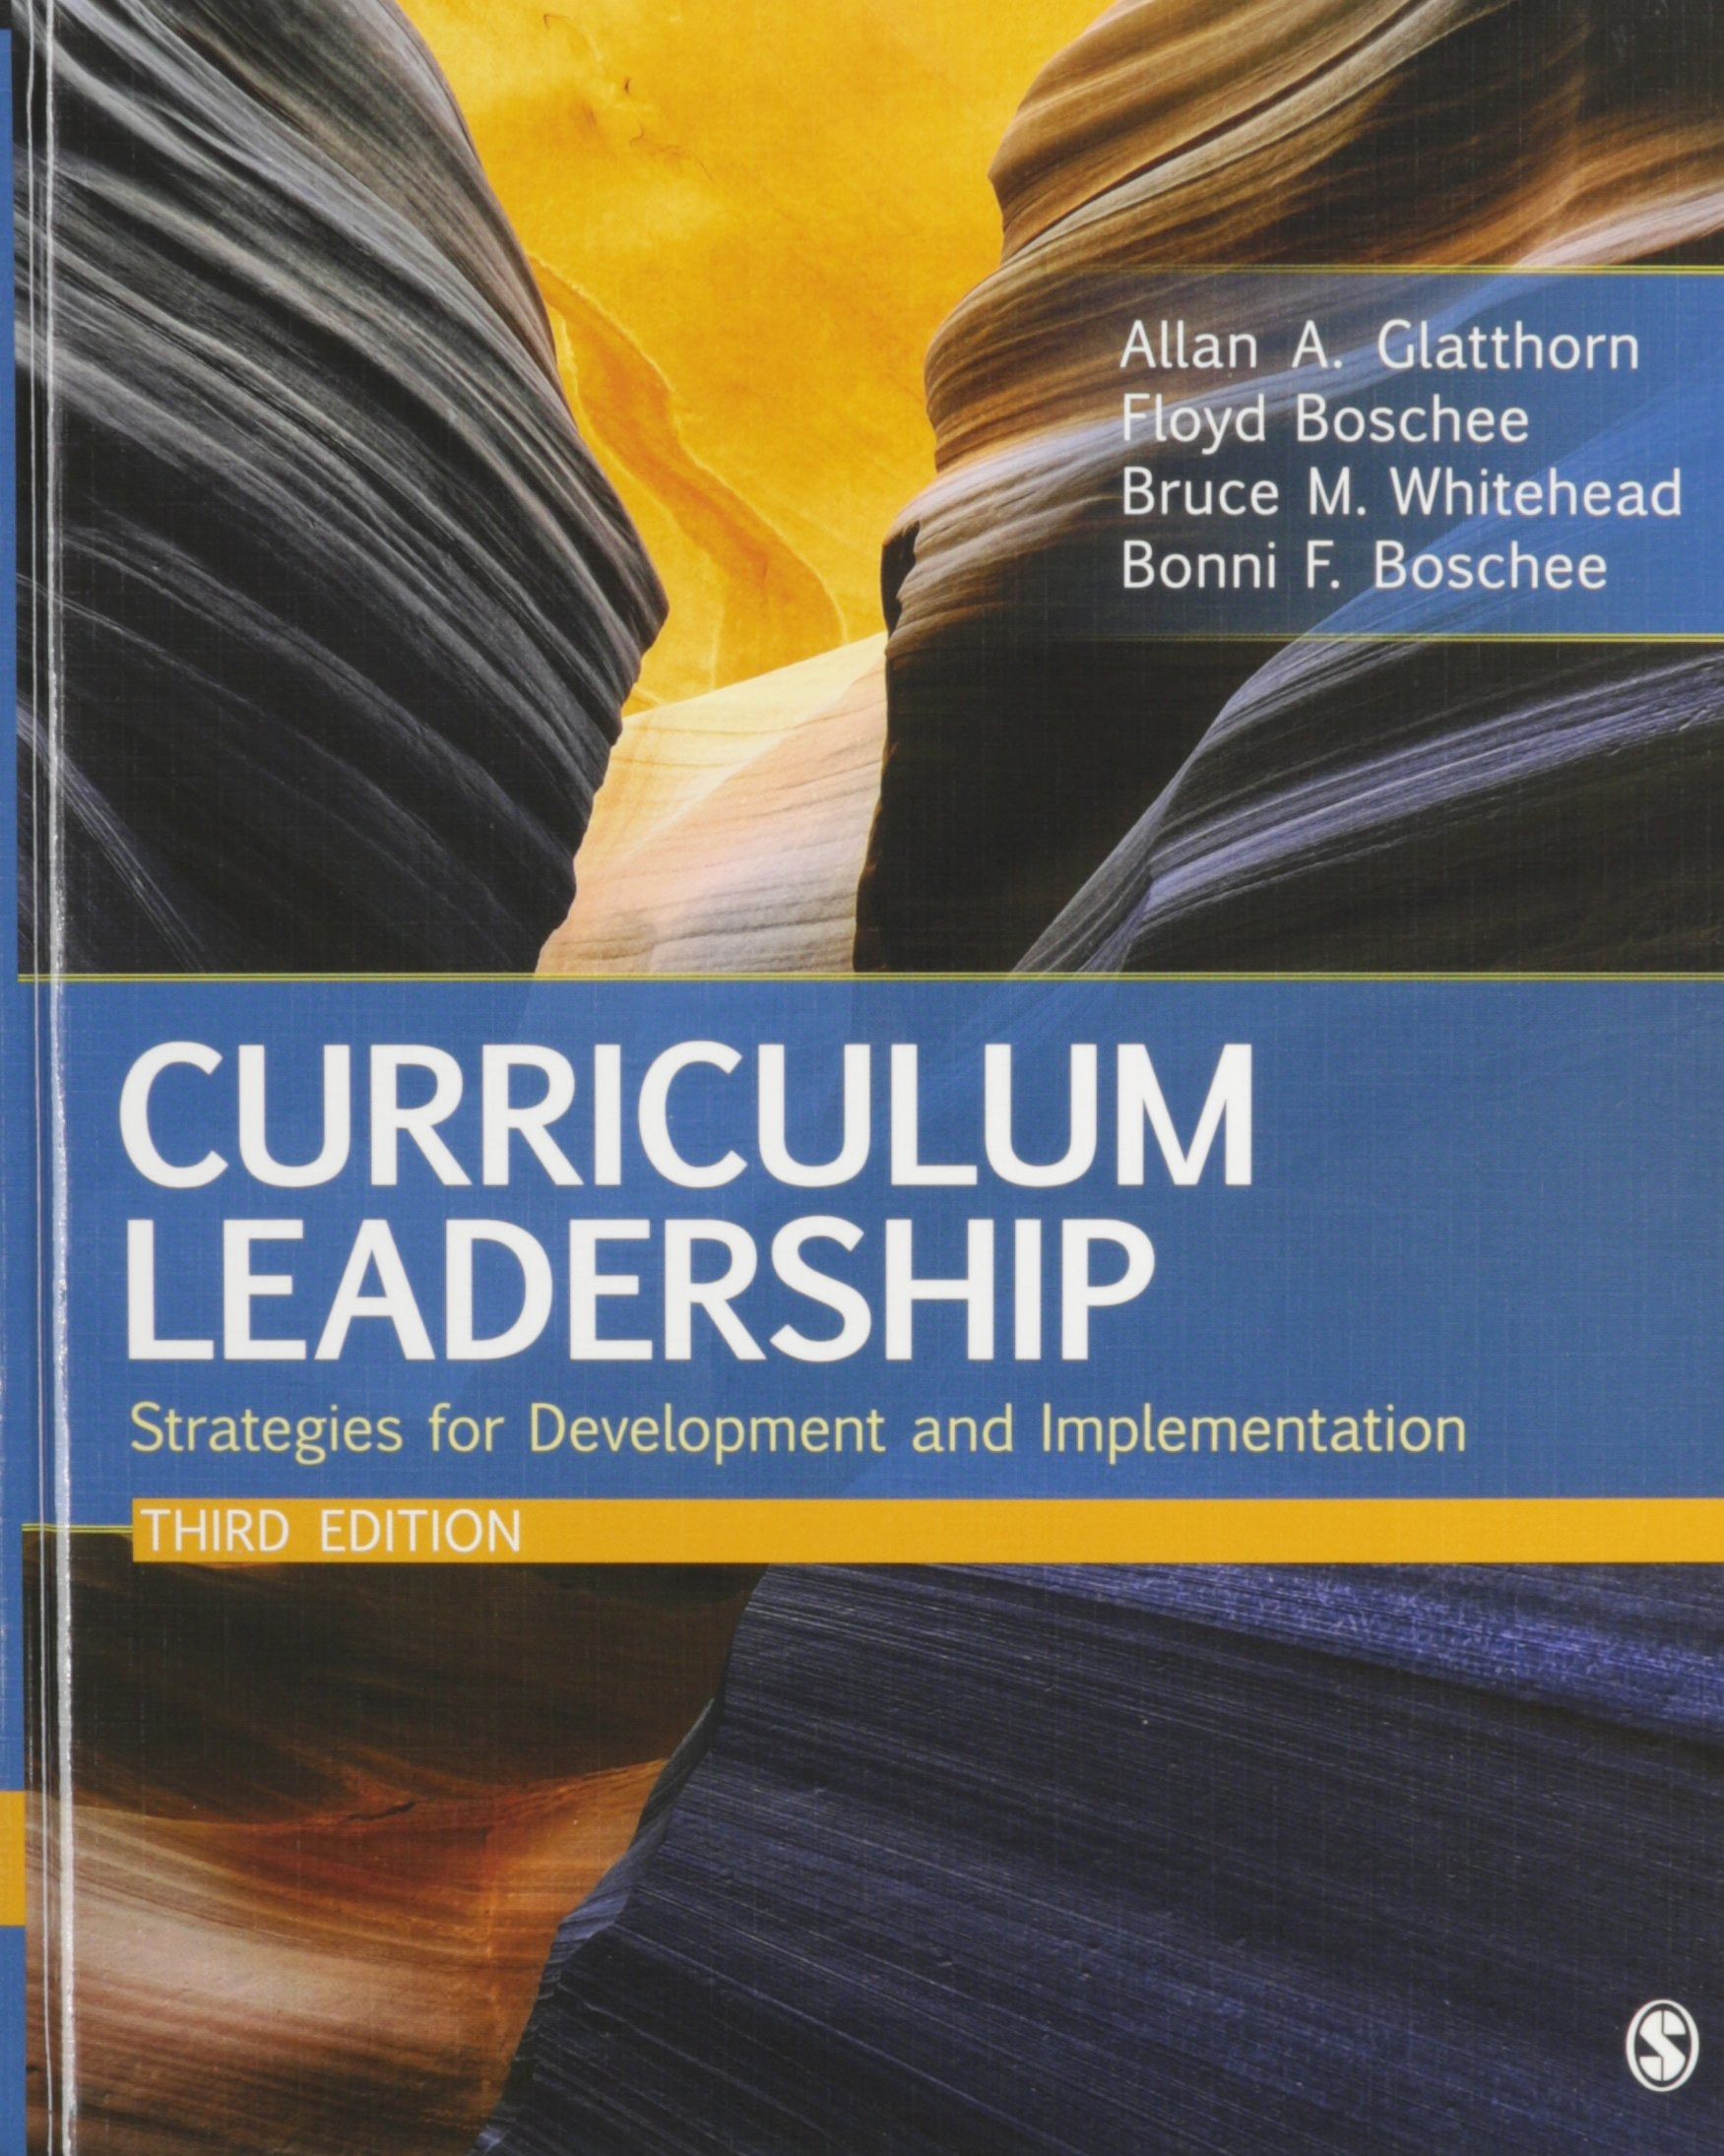 Curriculum Leadership with Curriculum Leadership Access Code: Strategies  for Development and Implementation: Amazon.co.uk: Allan A Glatthorn, ...